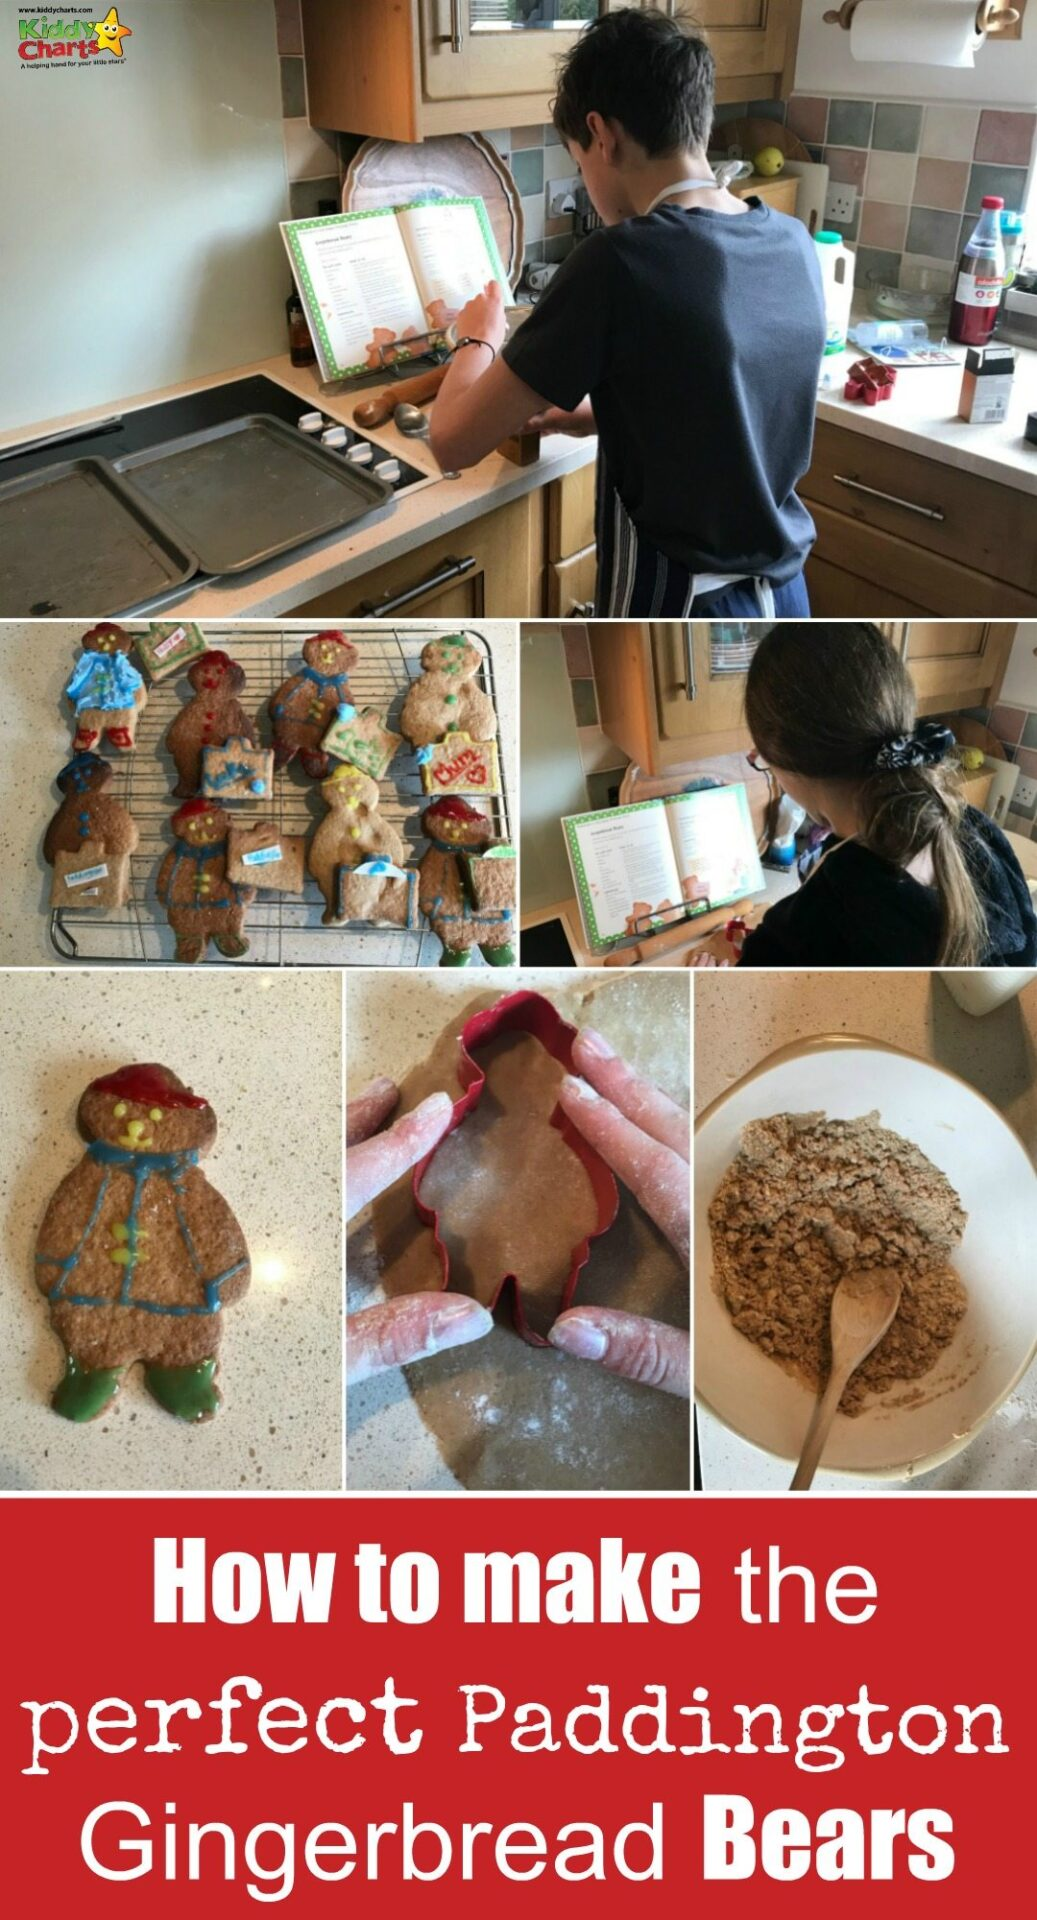 Do your kids love Paddington Bear - in which case they will LOVE this Gingerbread bears - so easy to make; in fact this 12 year old did?!? #Paddington2 #biscuits #cookingwithkids #gingerbread